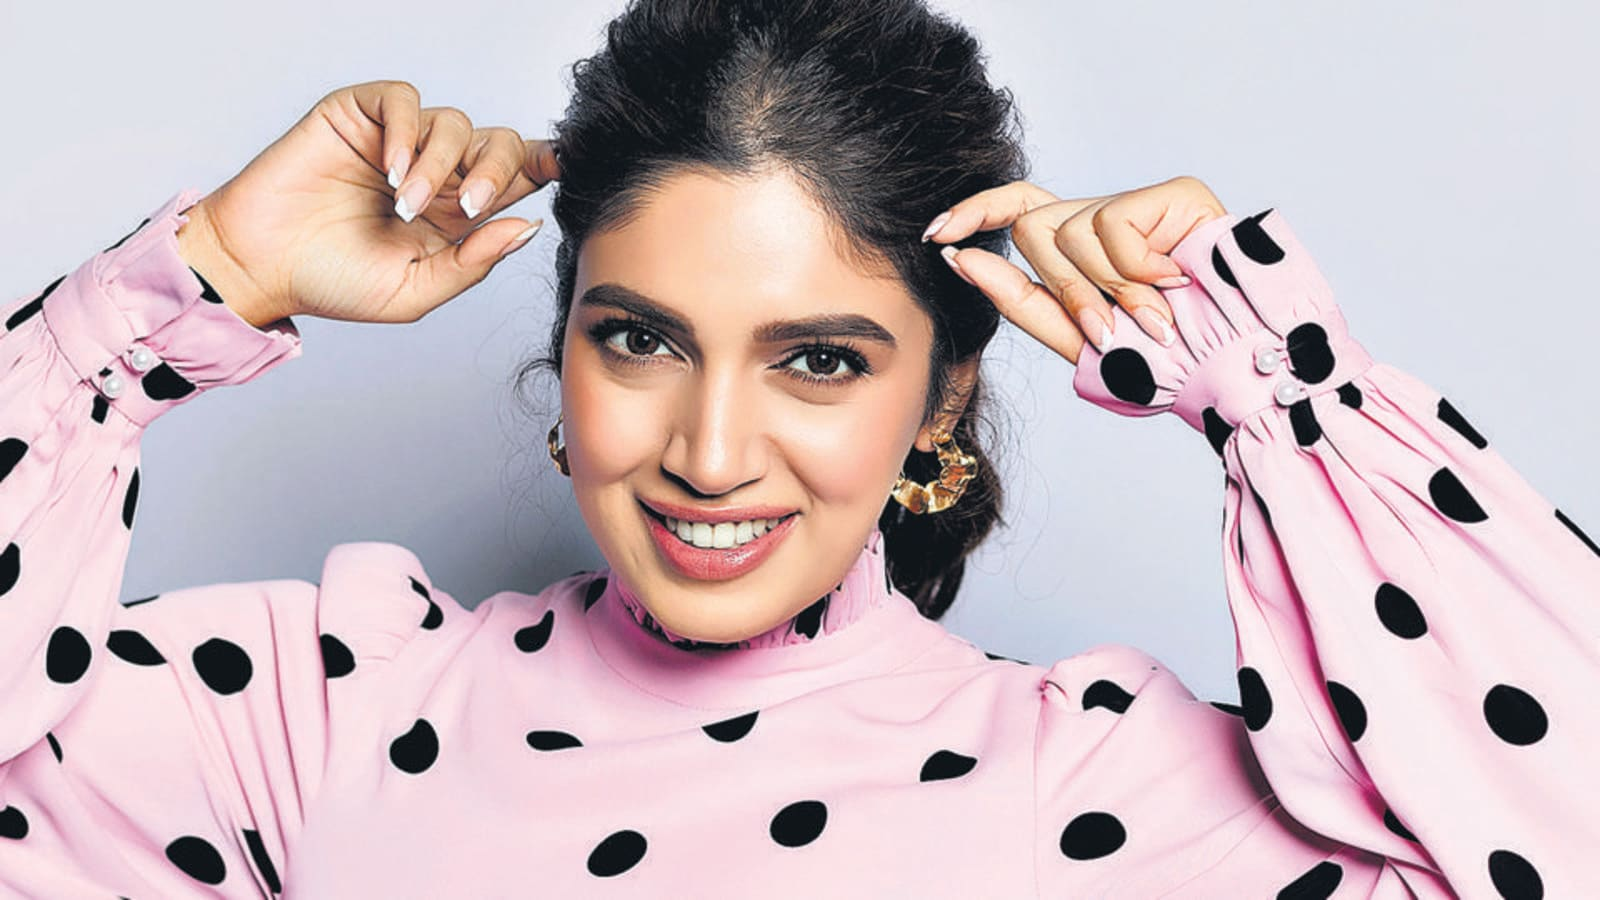 Bhumi Pednekar: Women are a far cry from being equal to men - Hindustan Times